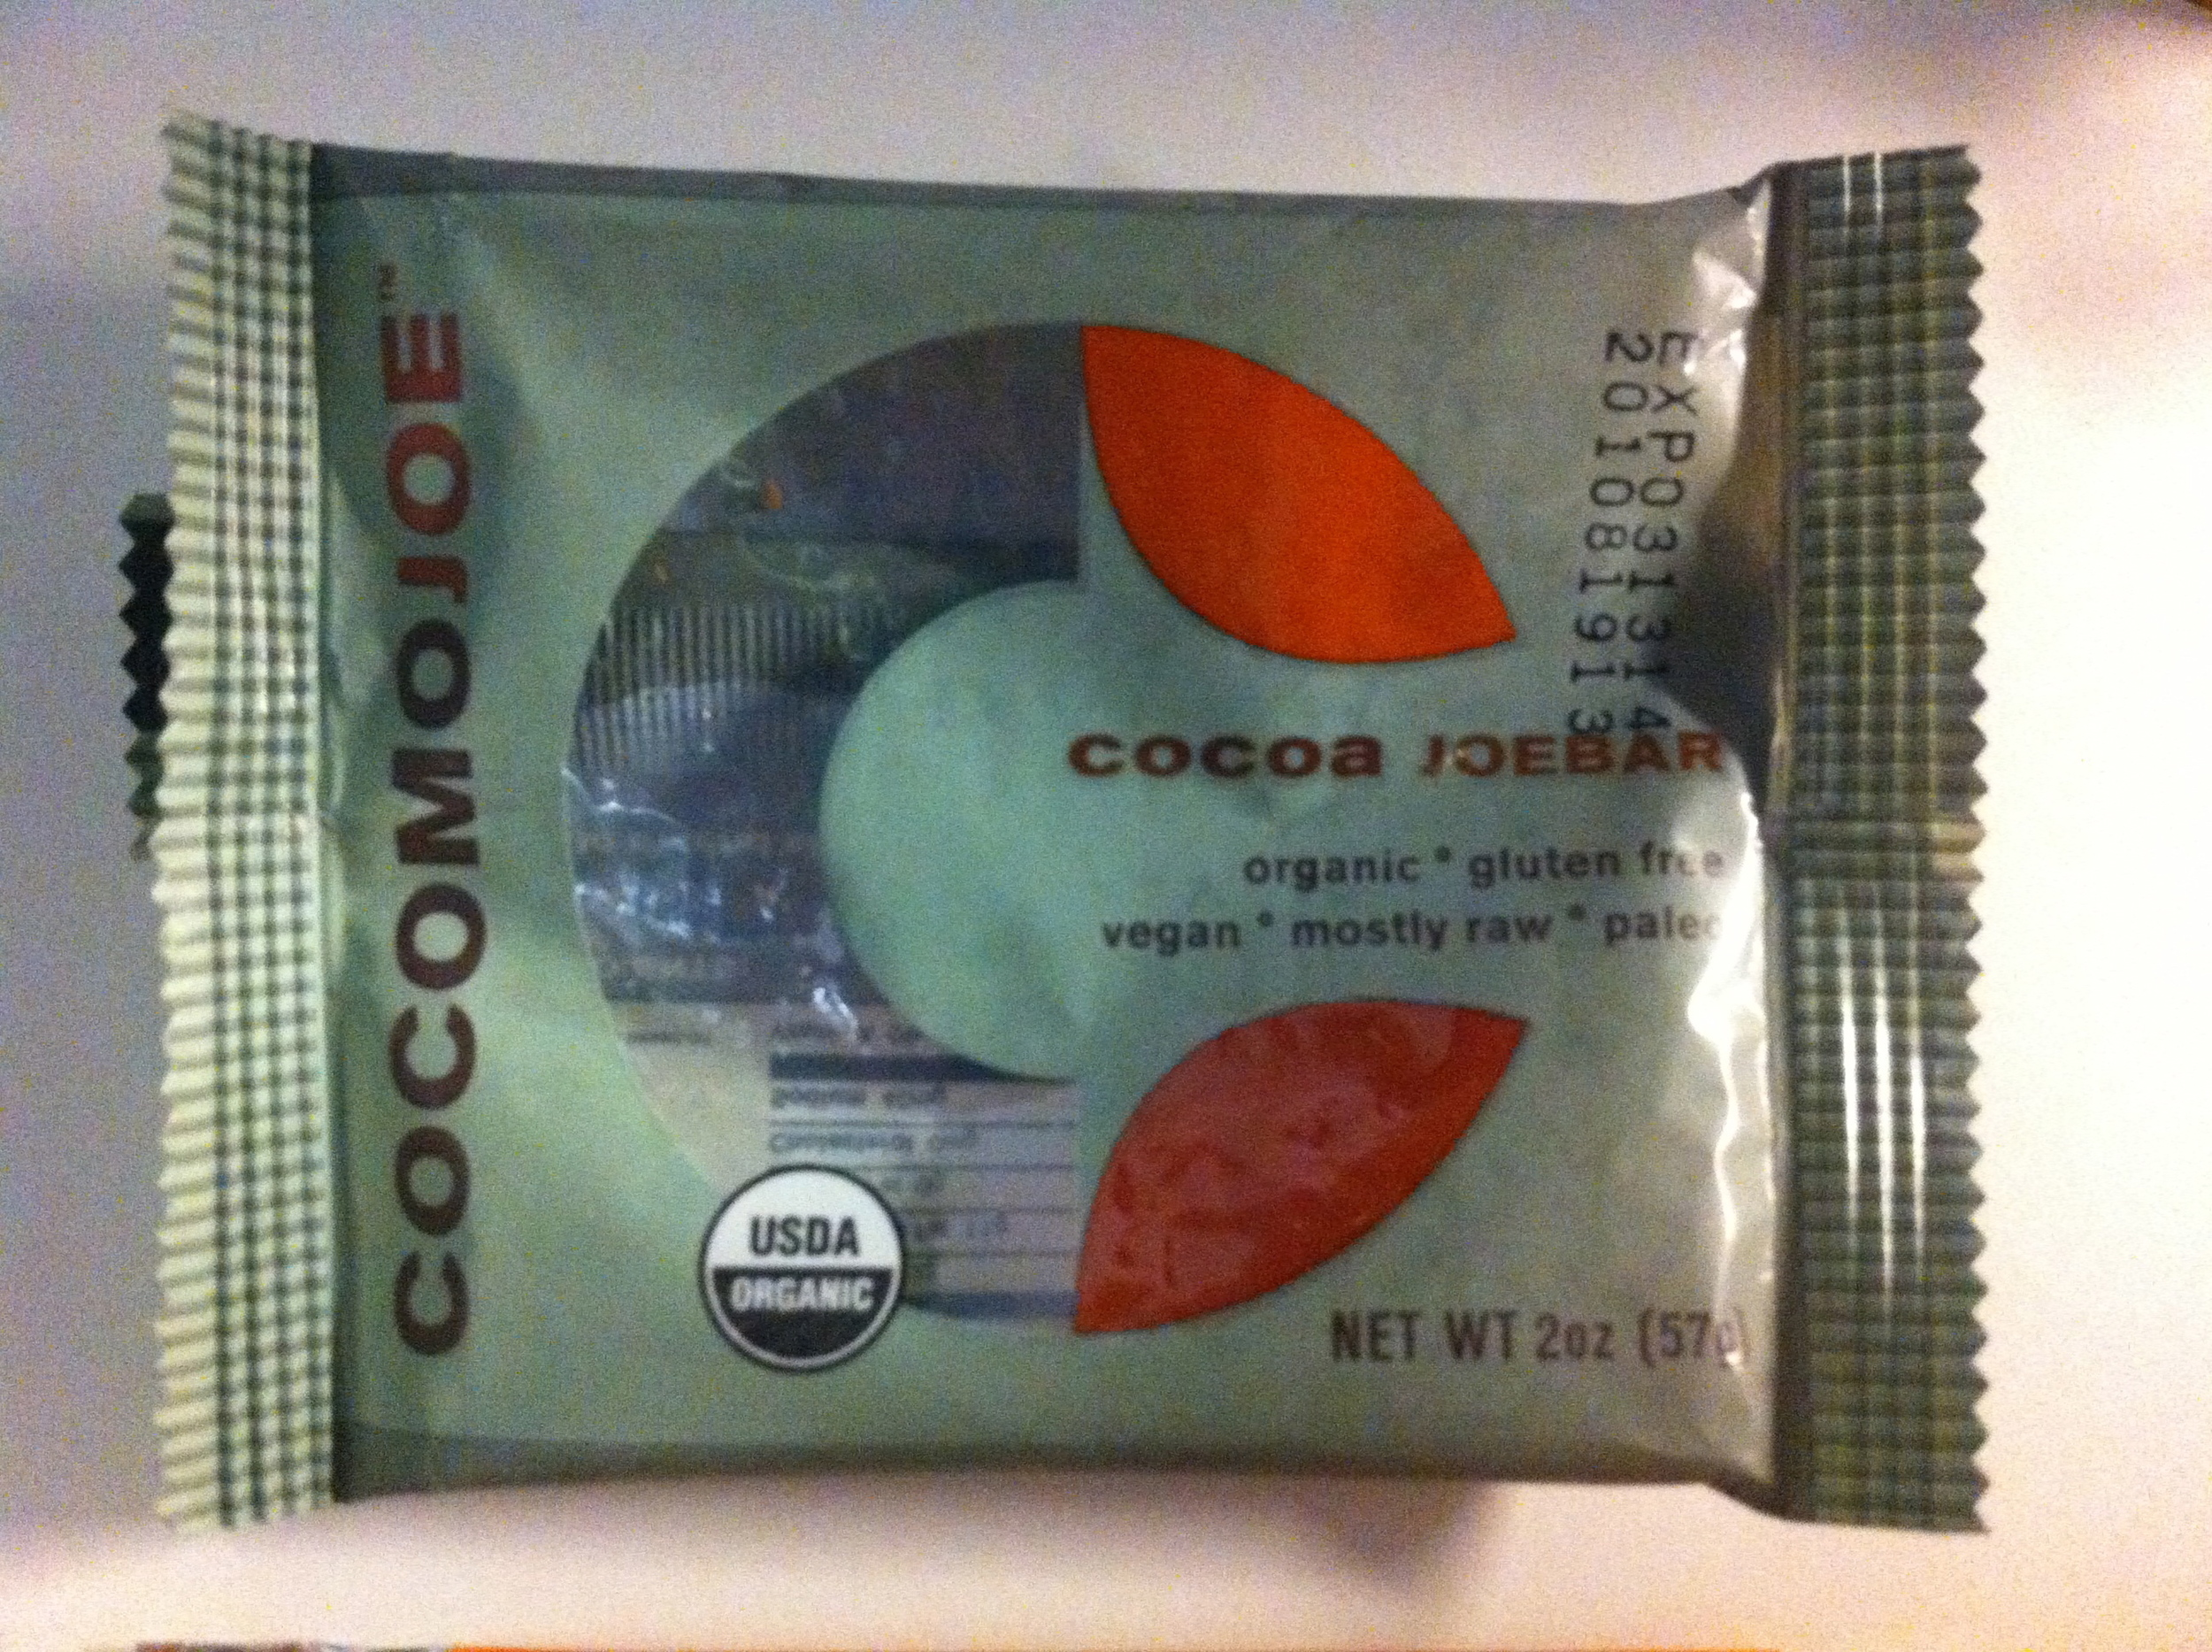 CocoMojoe Bar